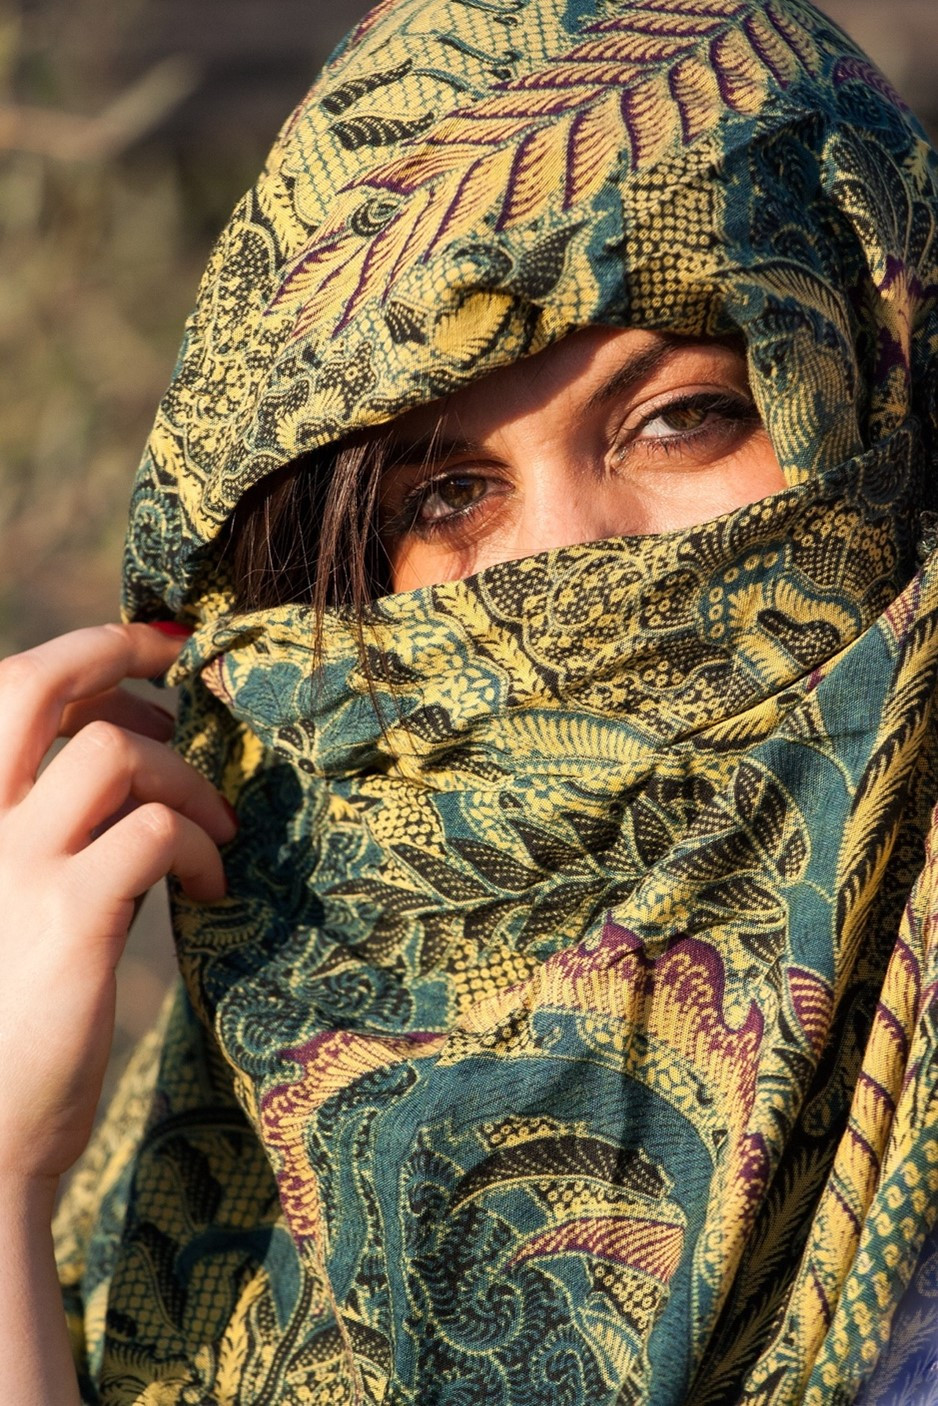 This is a picture of a woman wearing a green scarf with a leaf pattern around her head, with only her eyes and the bridge of her nose visible. She's using the middle finger on her right hand to draw back the scarf, revealing a small amount of brown hair.